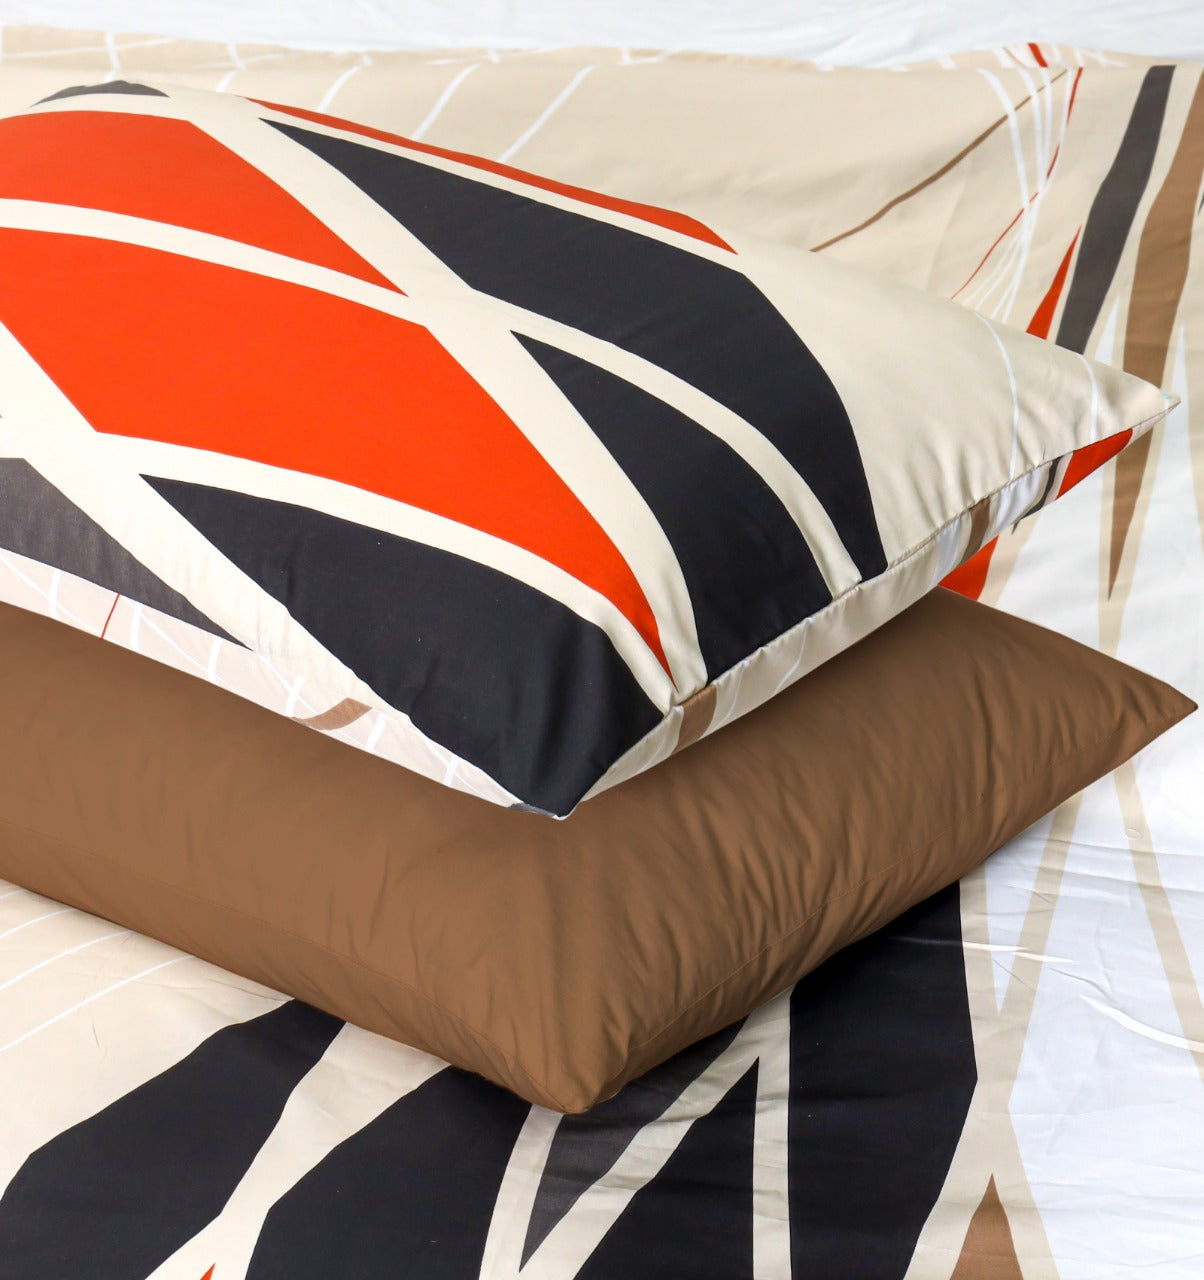 2 Pillows Bed Sheet  - Symmetric Orange